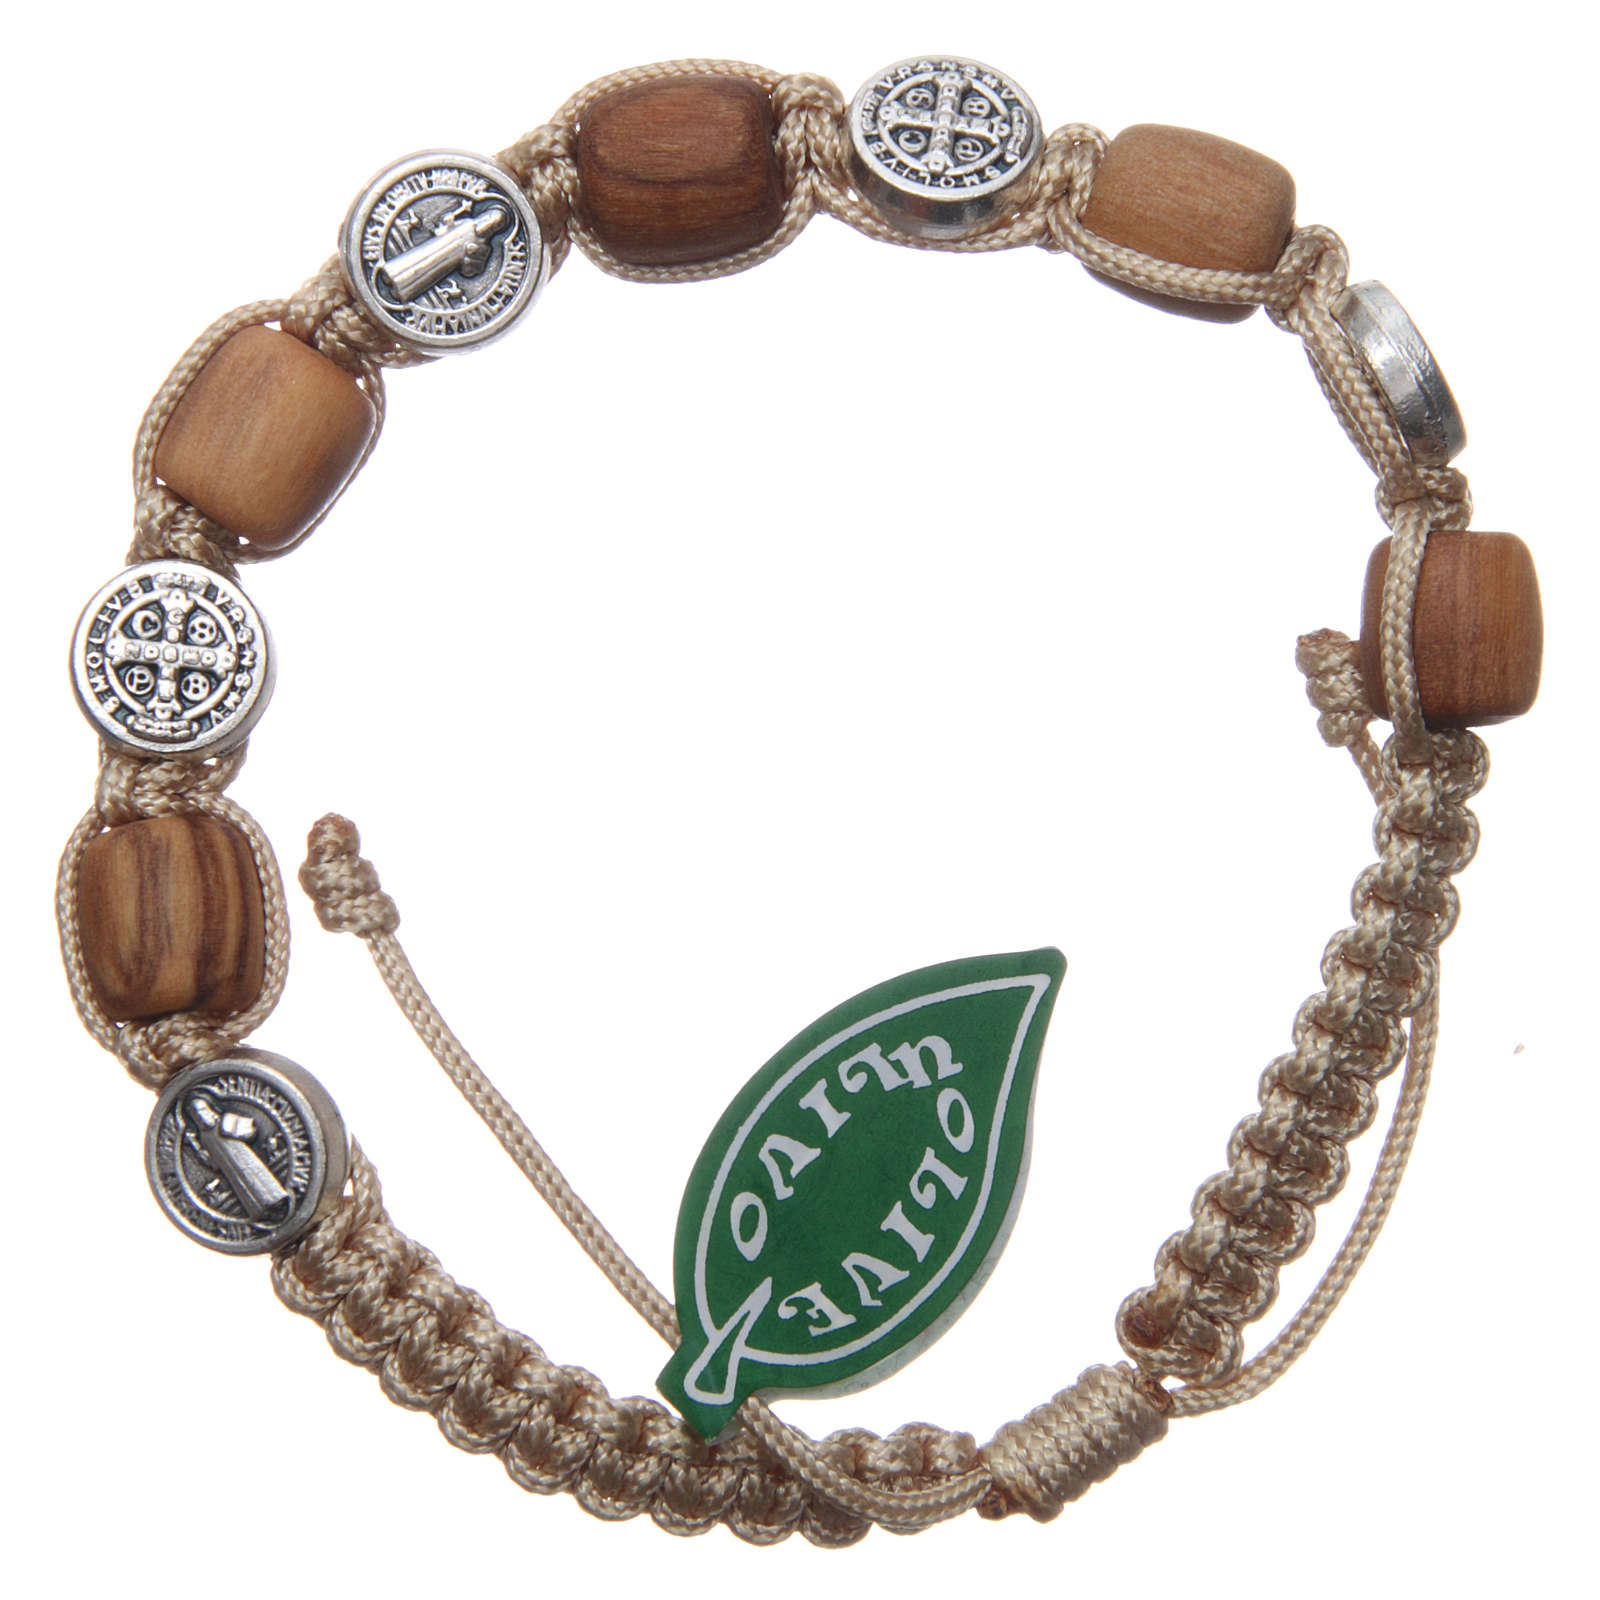 Olive wood bracelet with Saint Benedict cross and beige rope 4